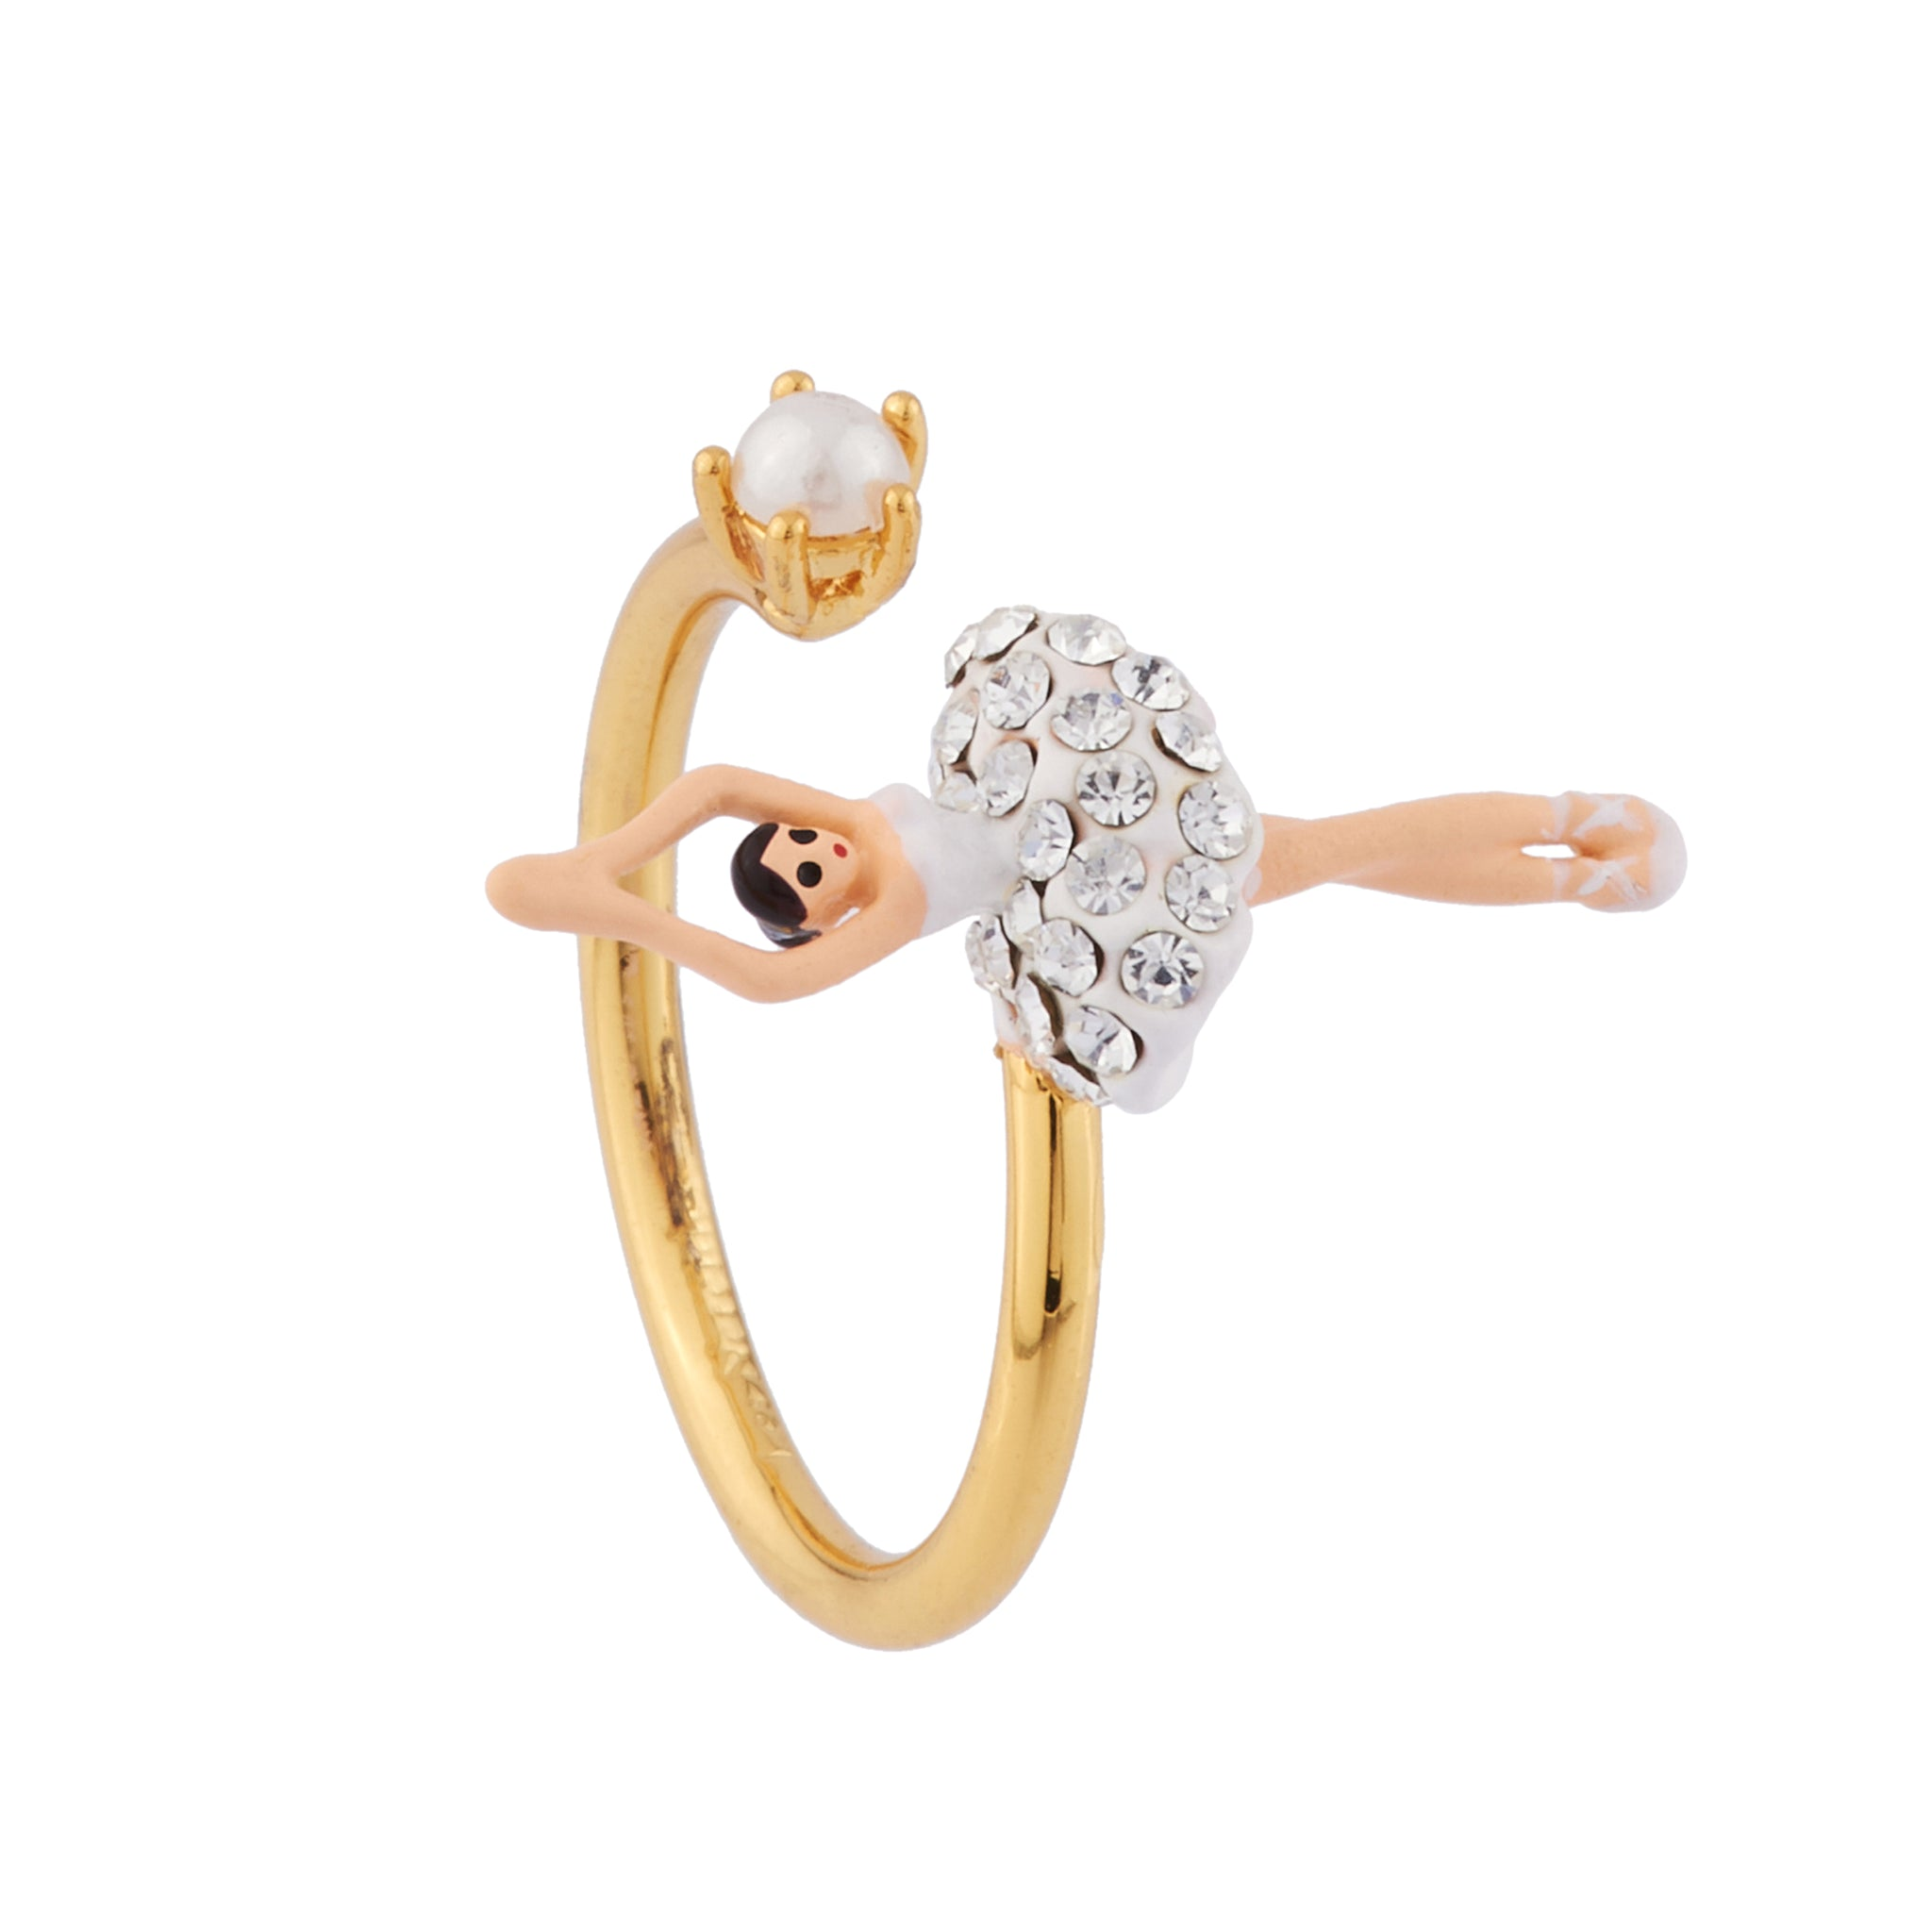 White Mini Ballerina Adjustable Ring with Rhinestones and Pearl